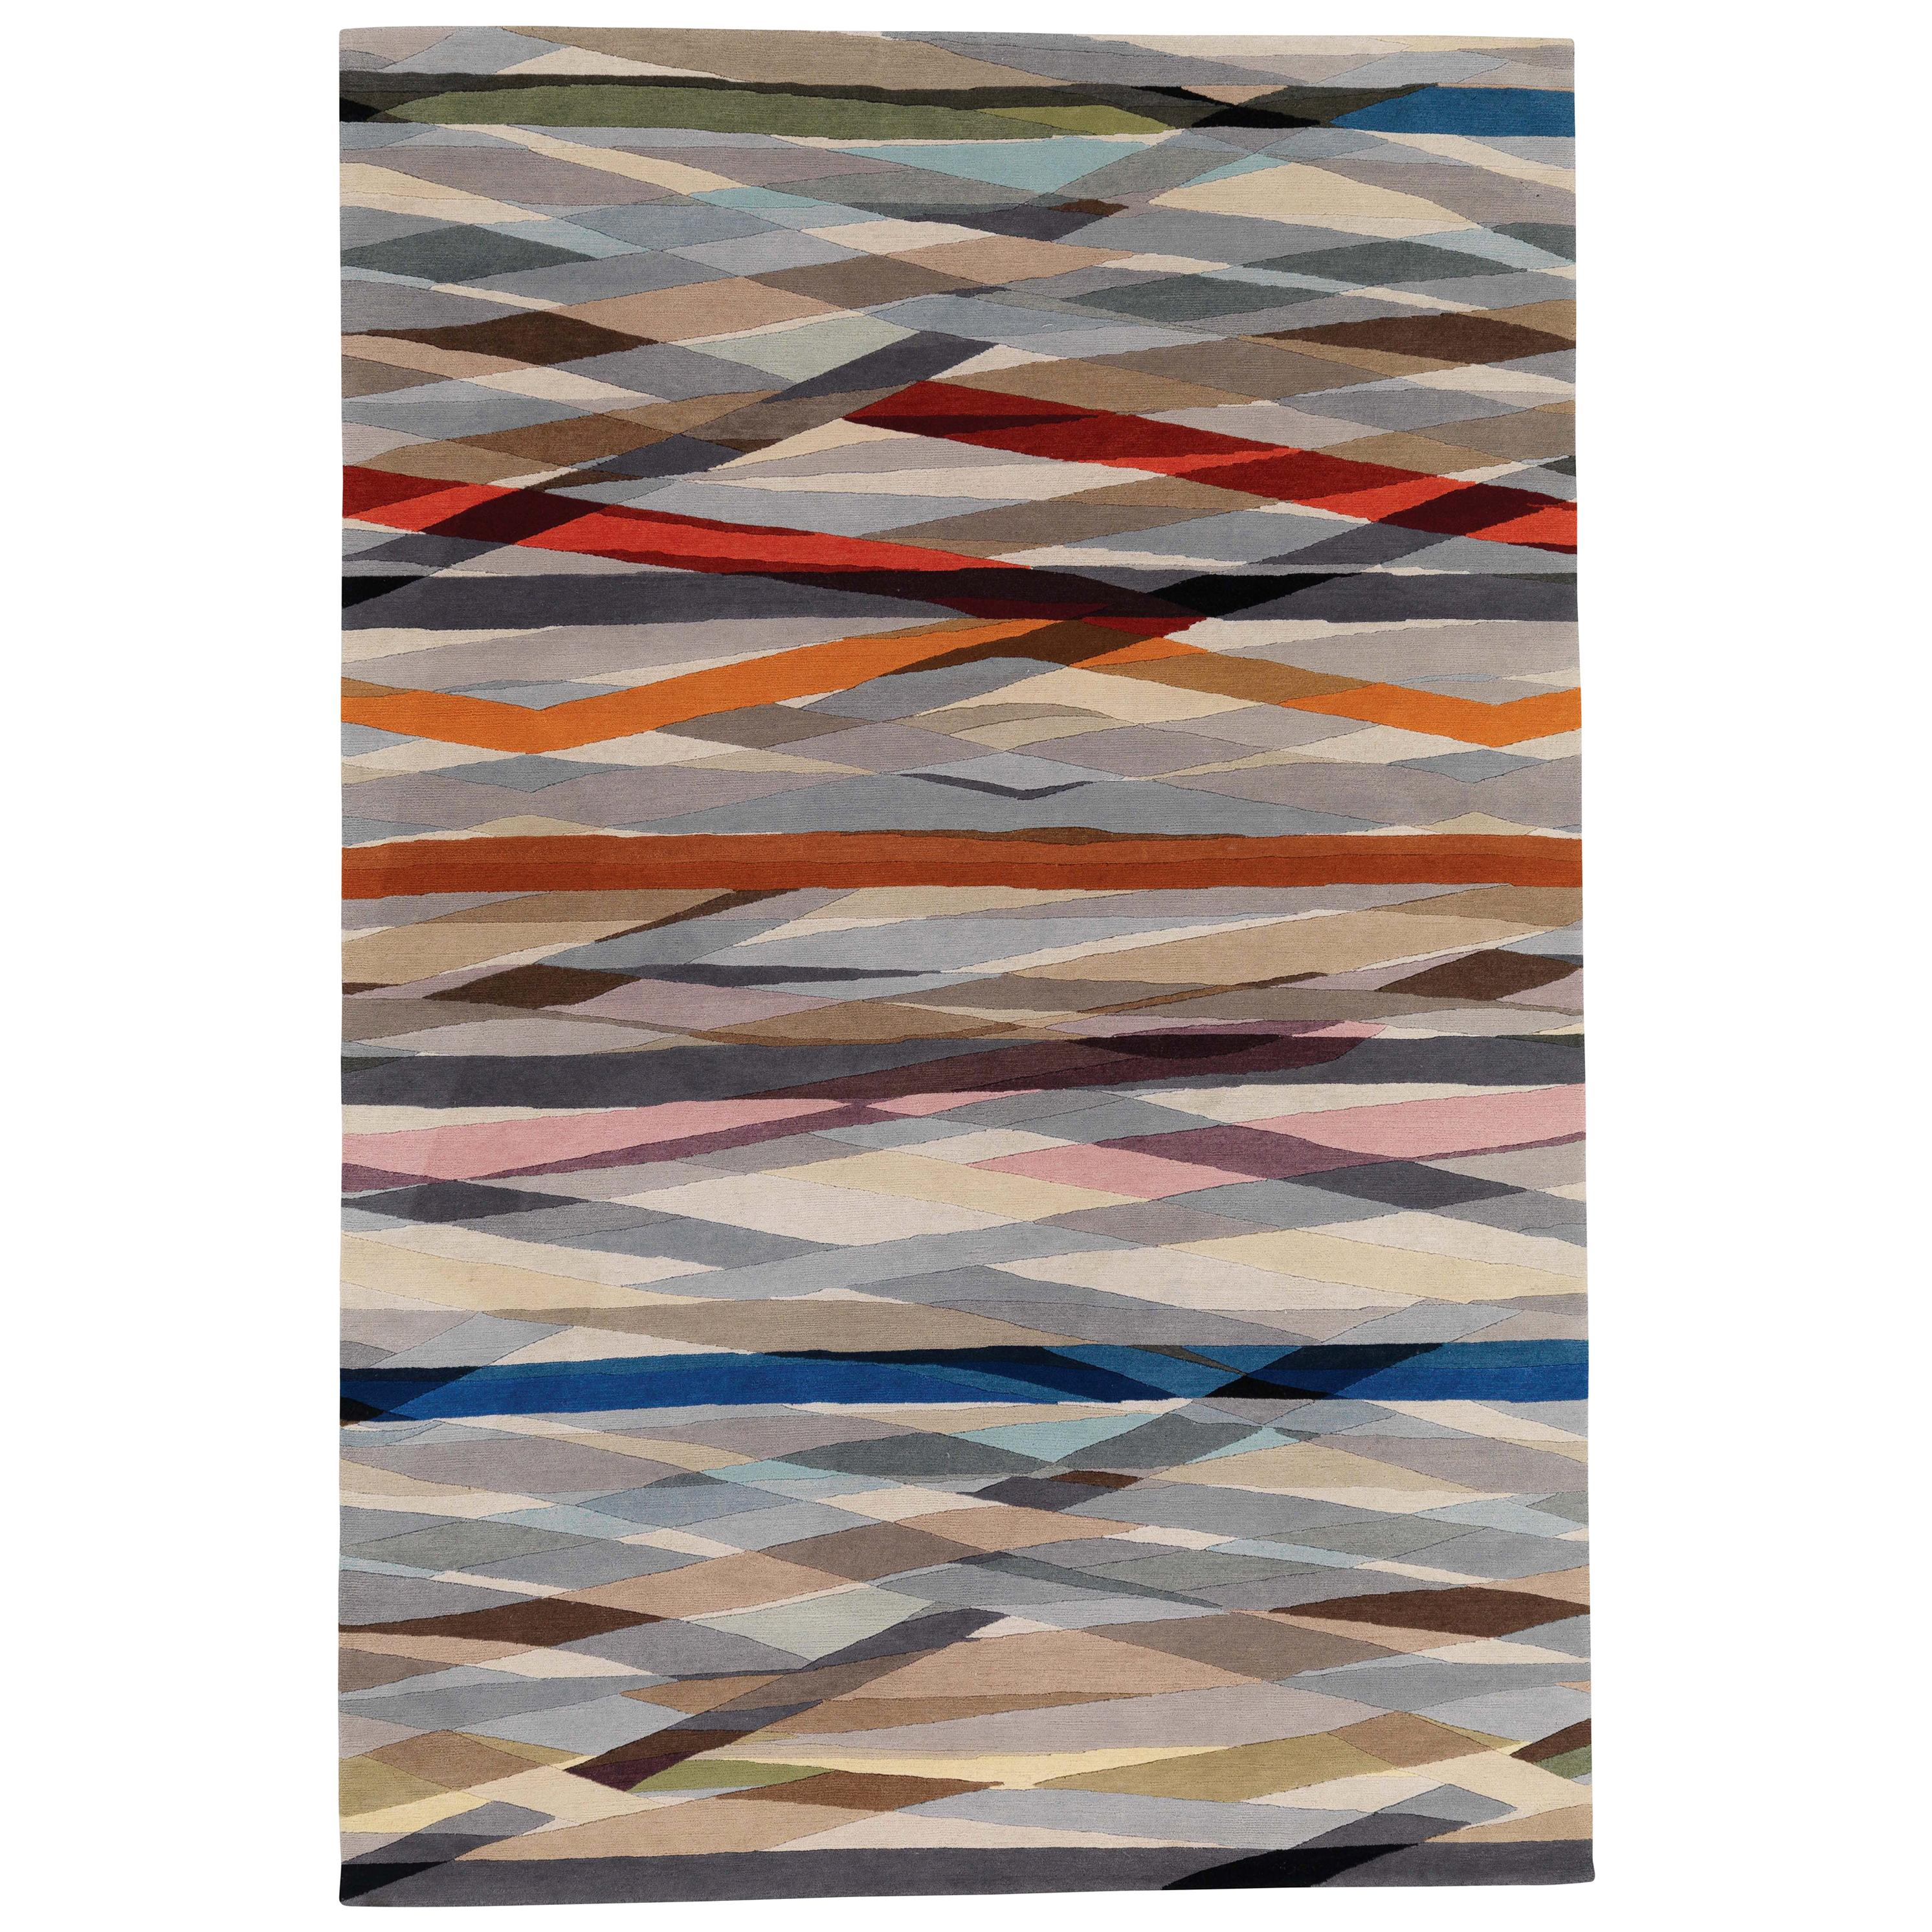 Carnival Hand Knotted 10x8 Rug in Wool by Paul Smith